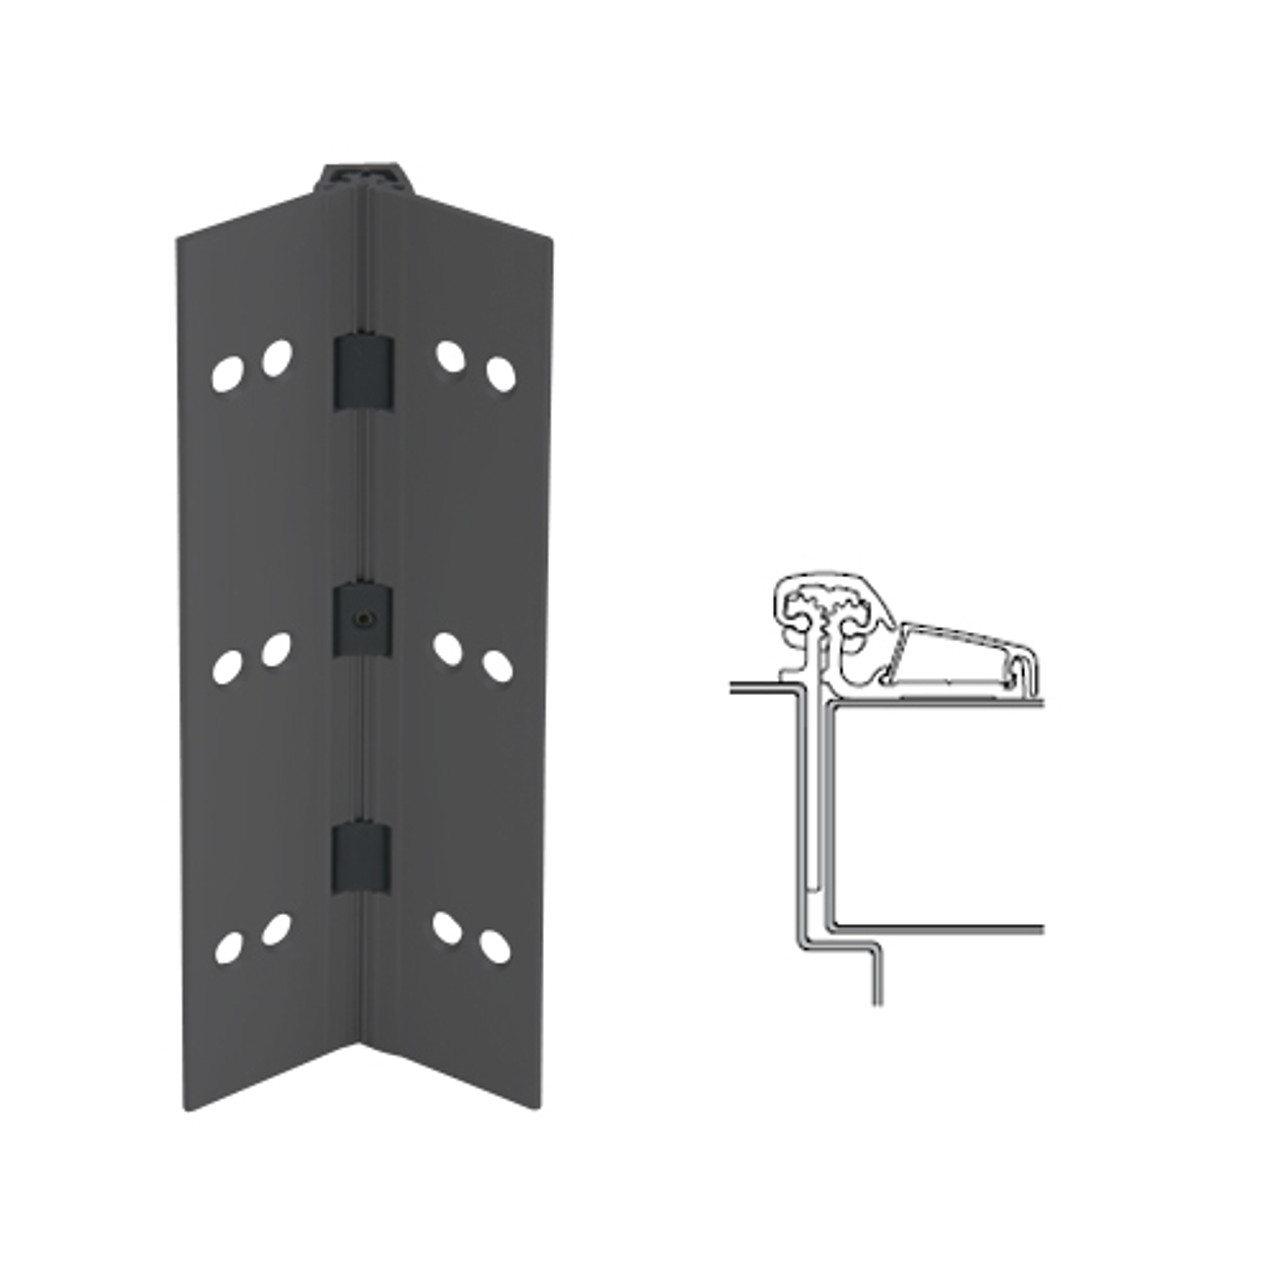 053XY-315AN-120-SECWDWD IVES Adjustable Half Surface Continuous Geared Hinges with Security Screws - Hex Pin Drive in Anodized Black